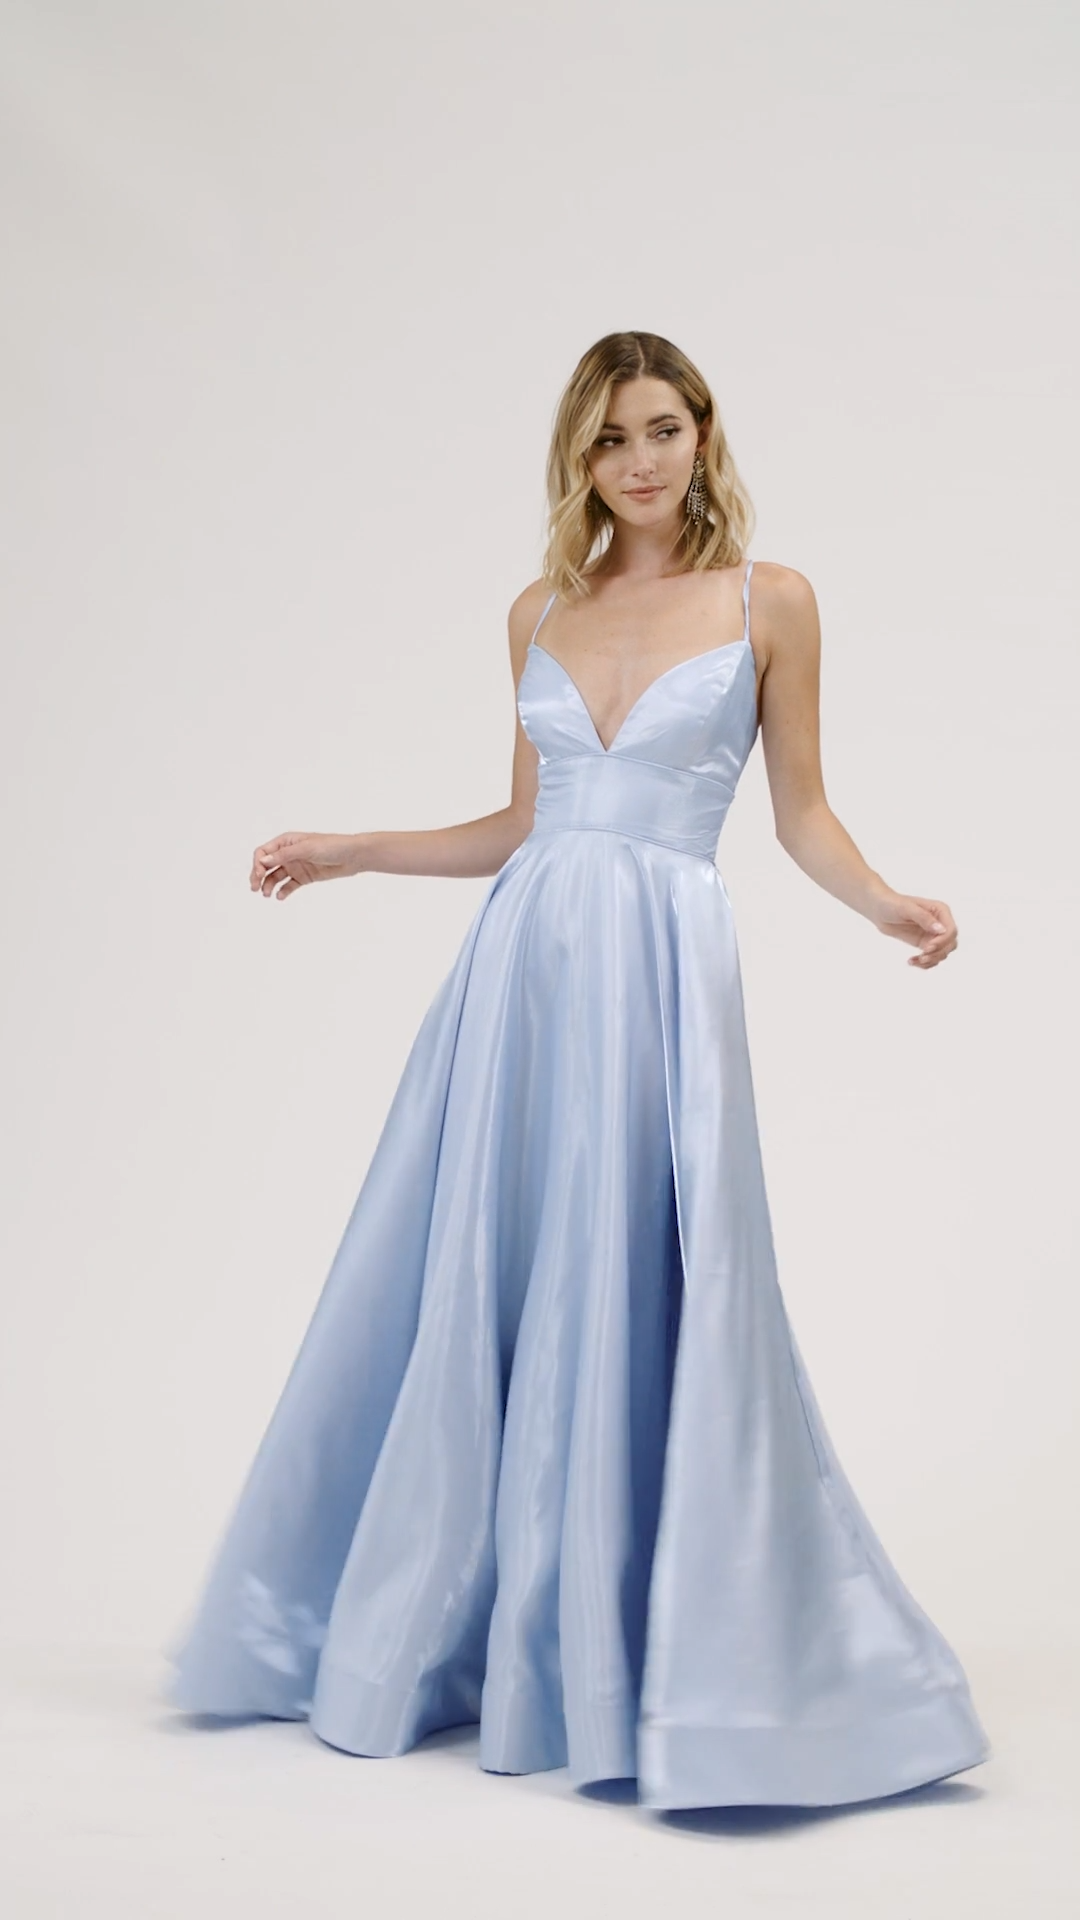 ValStefani 3924RY effortlessly flowing shiny satin full A-line prom dress with sexy front and back necklines